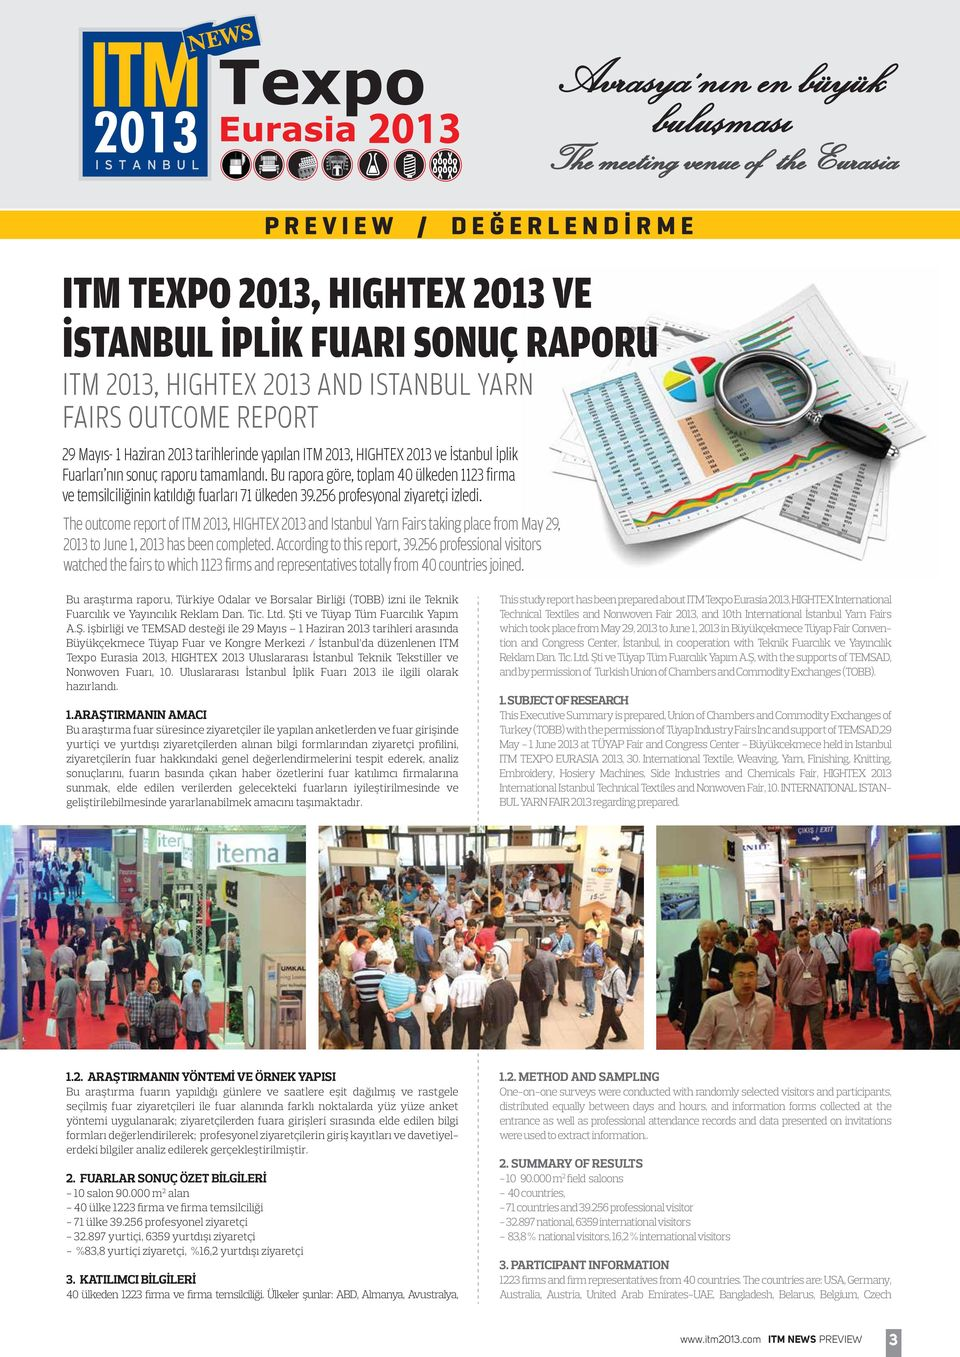 The outcome report of ITM 2013, HIGHTEX 2013 and Istanbul Yarn Fairs taking place from May 29, 2013 to June 1, 2013 has been completed. According to this report, 39.